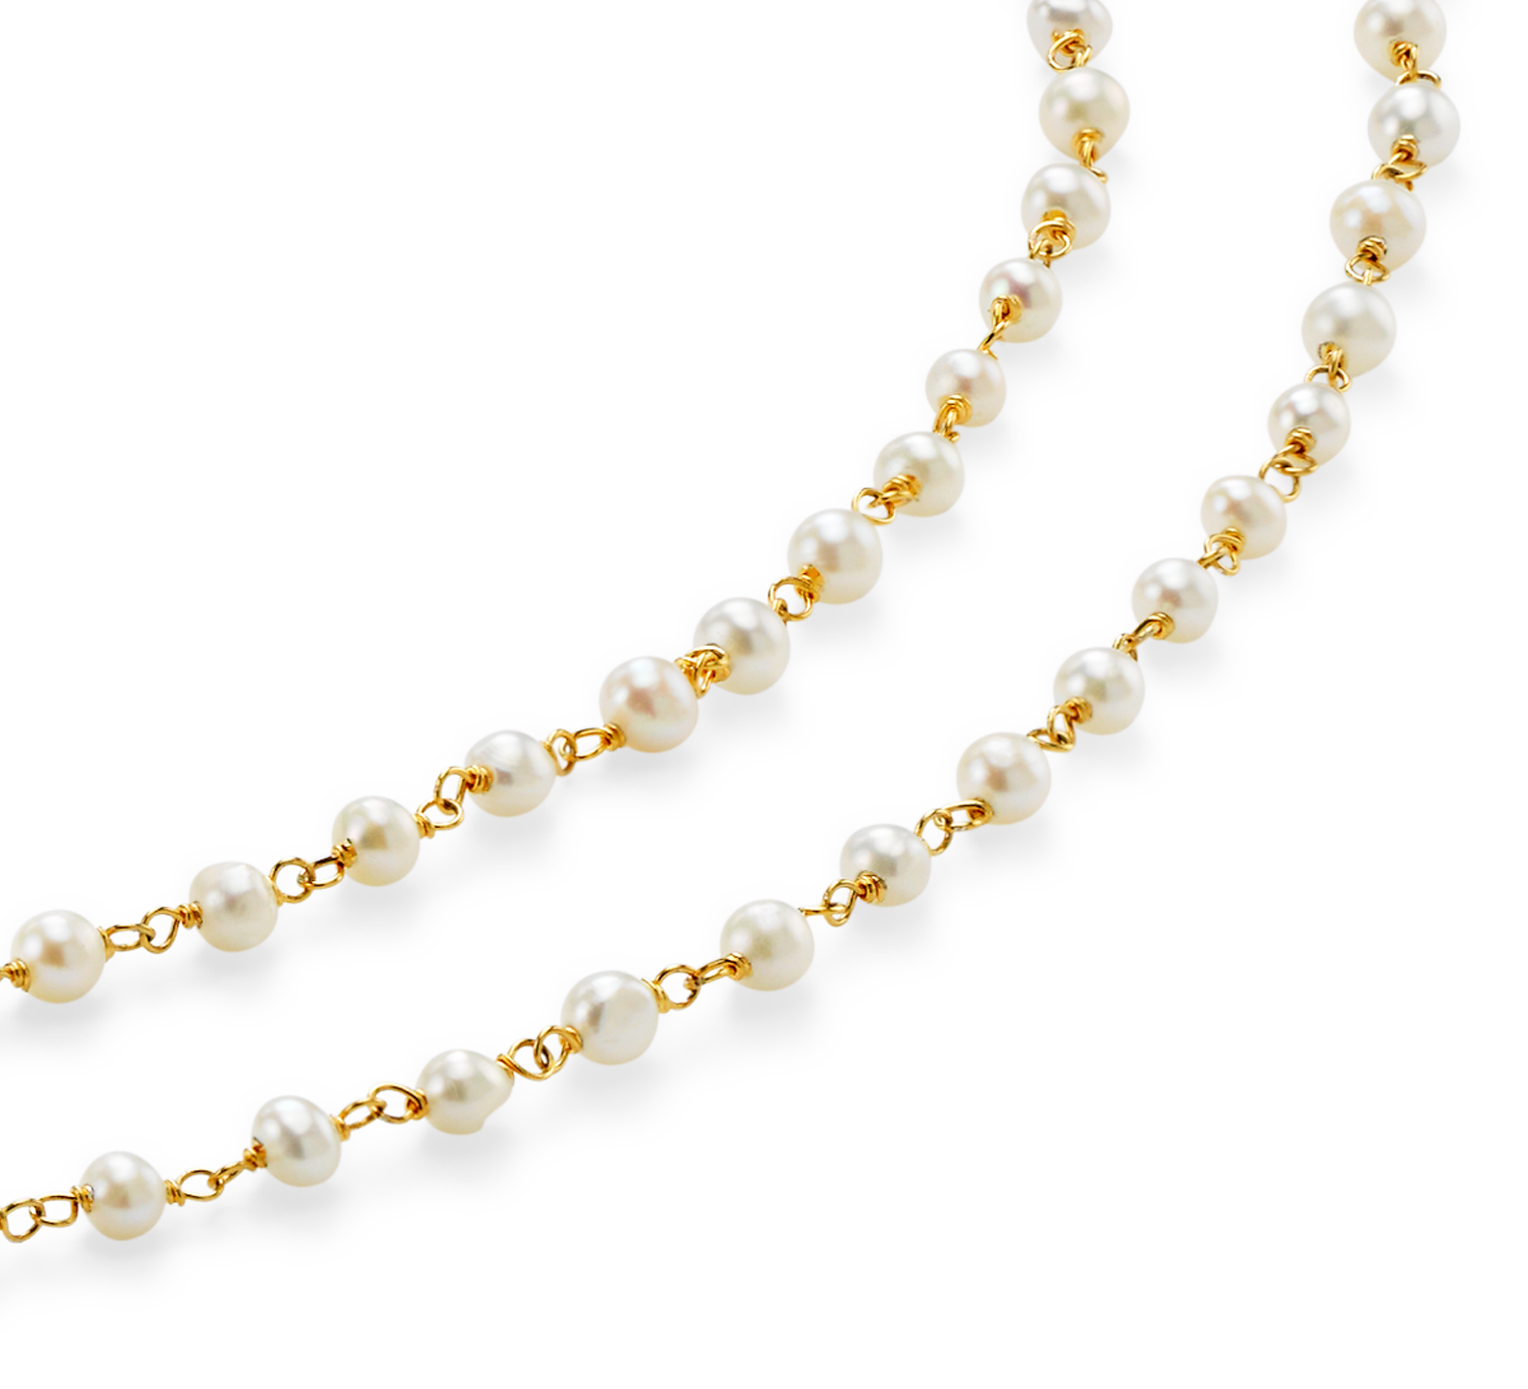 Freshwater Cultured Pearl Necklace in Gold Vermeil